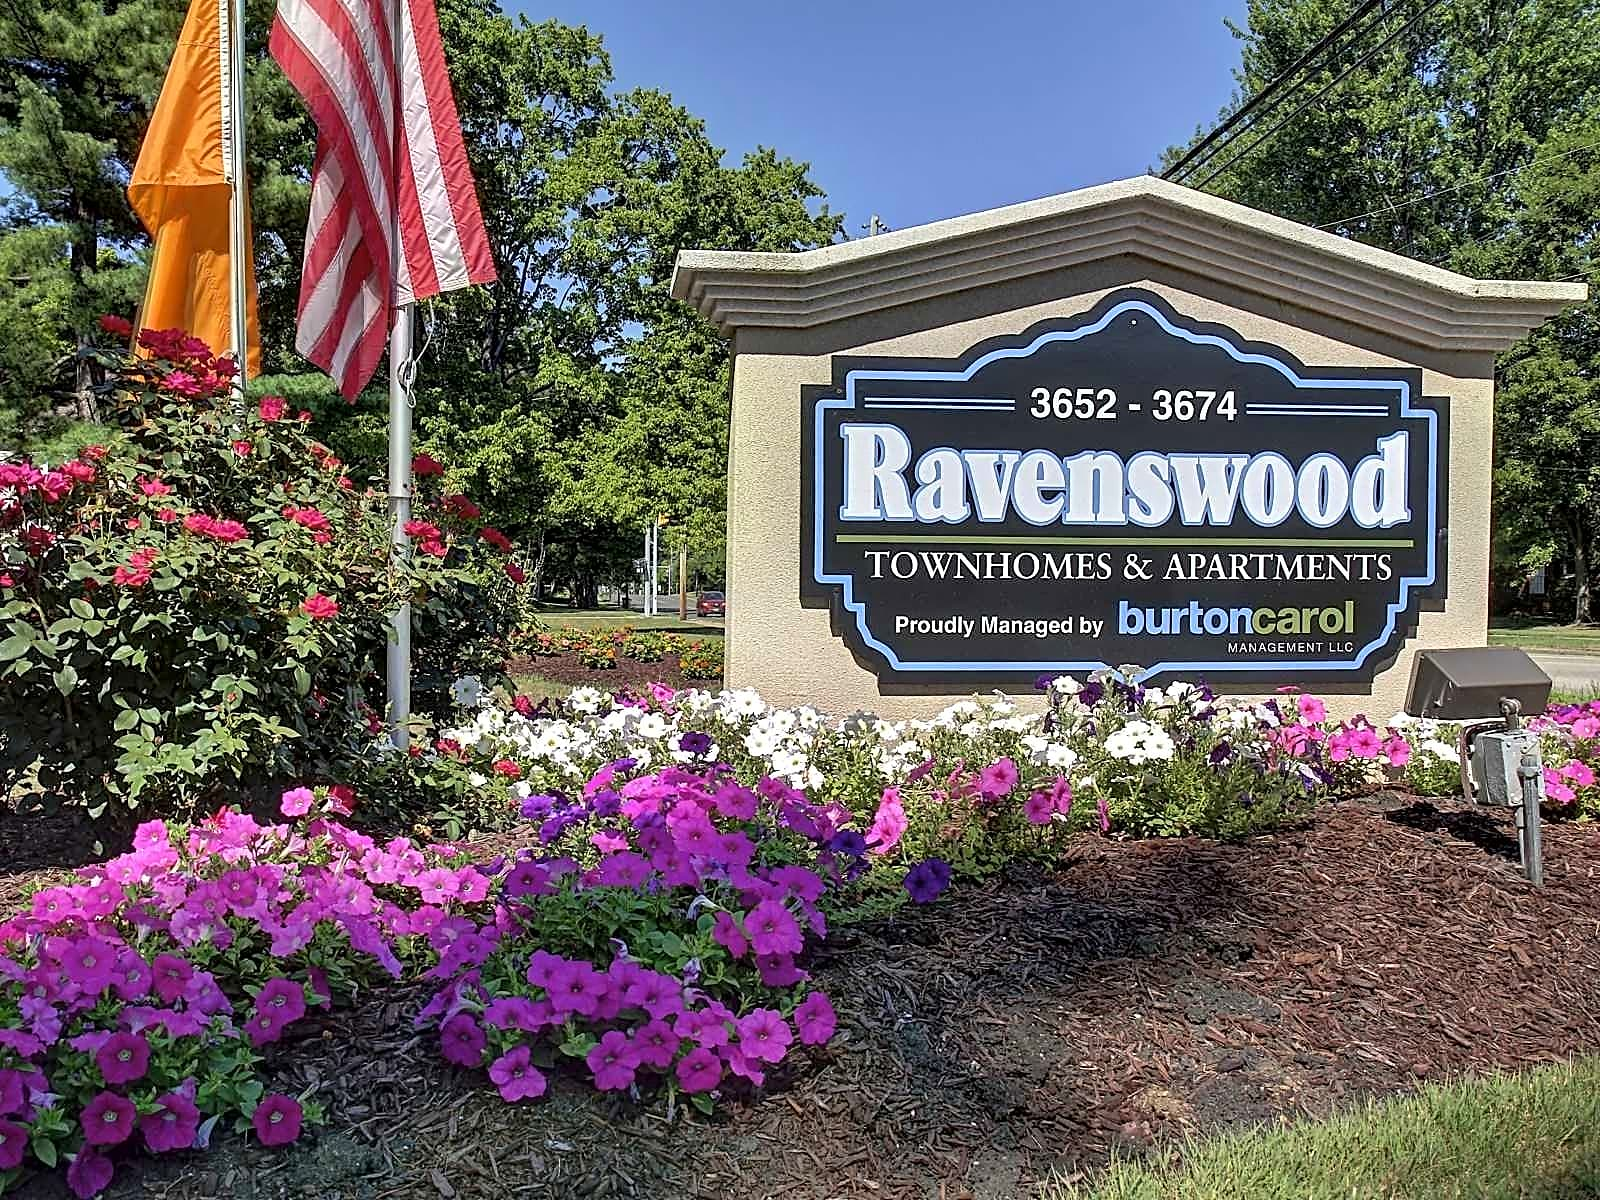 Highland Square Akron >> Ravenswood Townhouses and Apartments - Stow, OH 44224